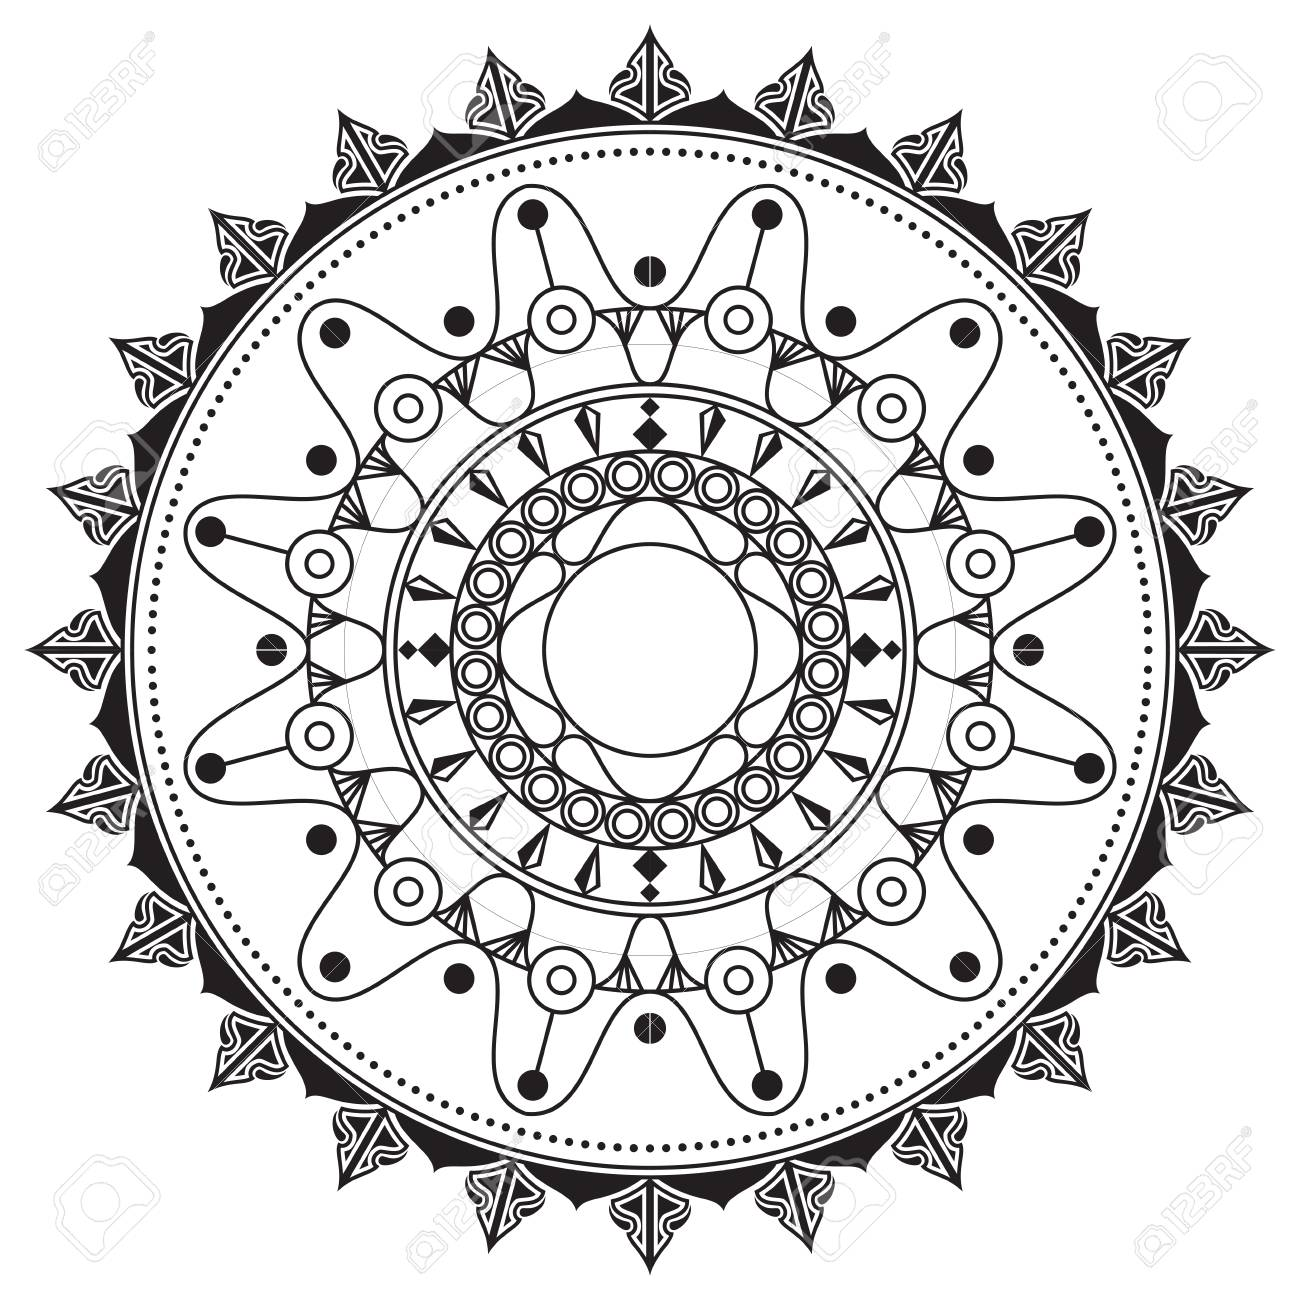 Mandala Hand Drawn Image For Backgrounds And Adult Coloring